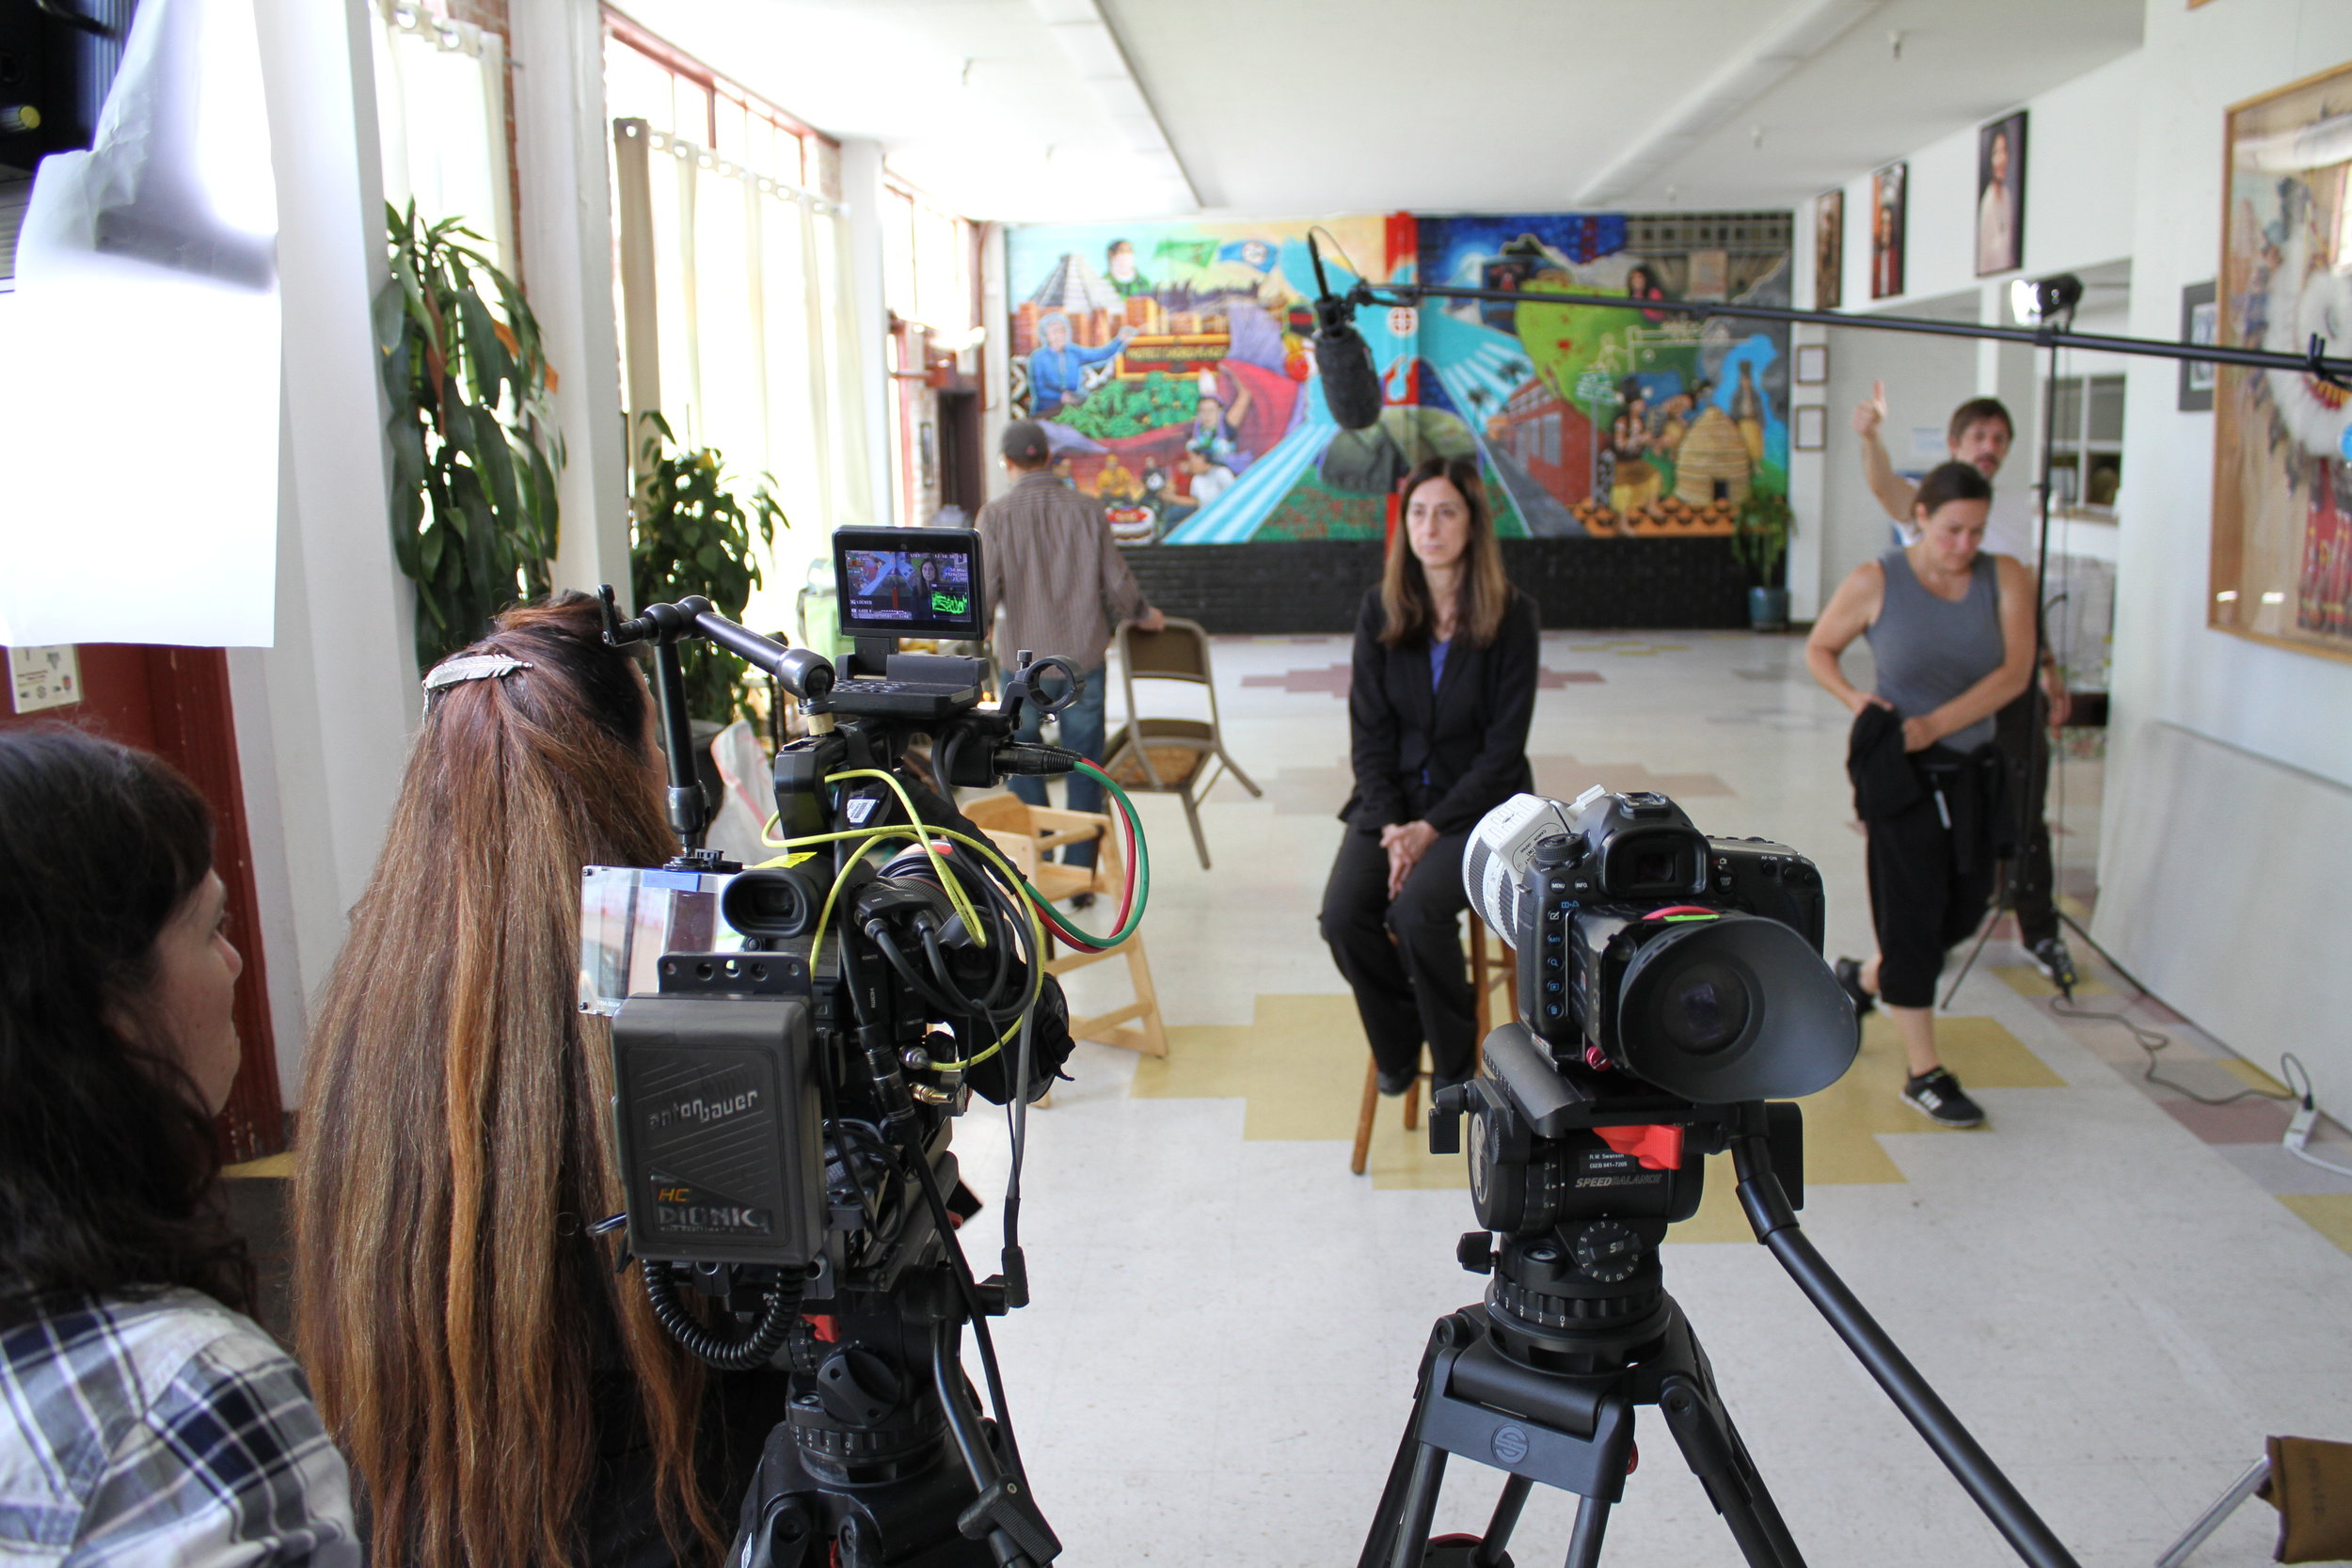 On location at the Intertribal Friendship House in Oakland, CA the Mankiller crew interviews Mary Smith